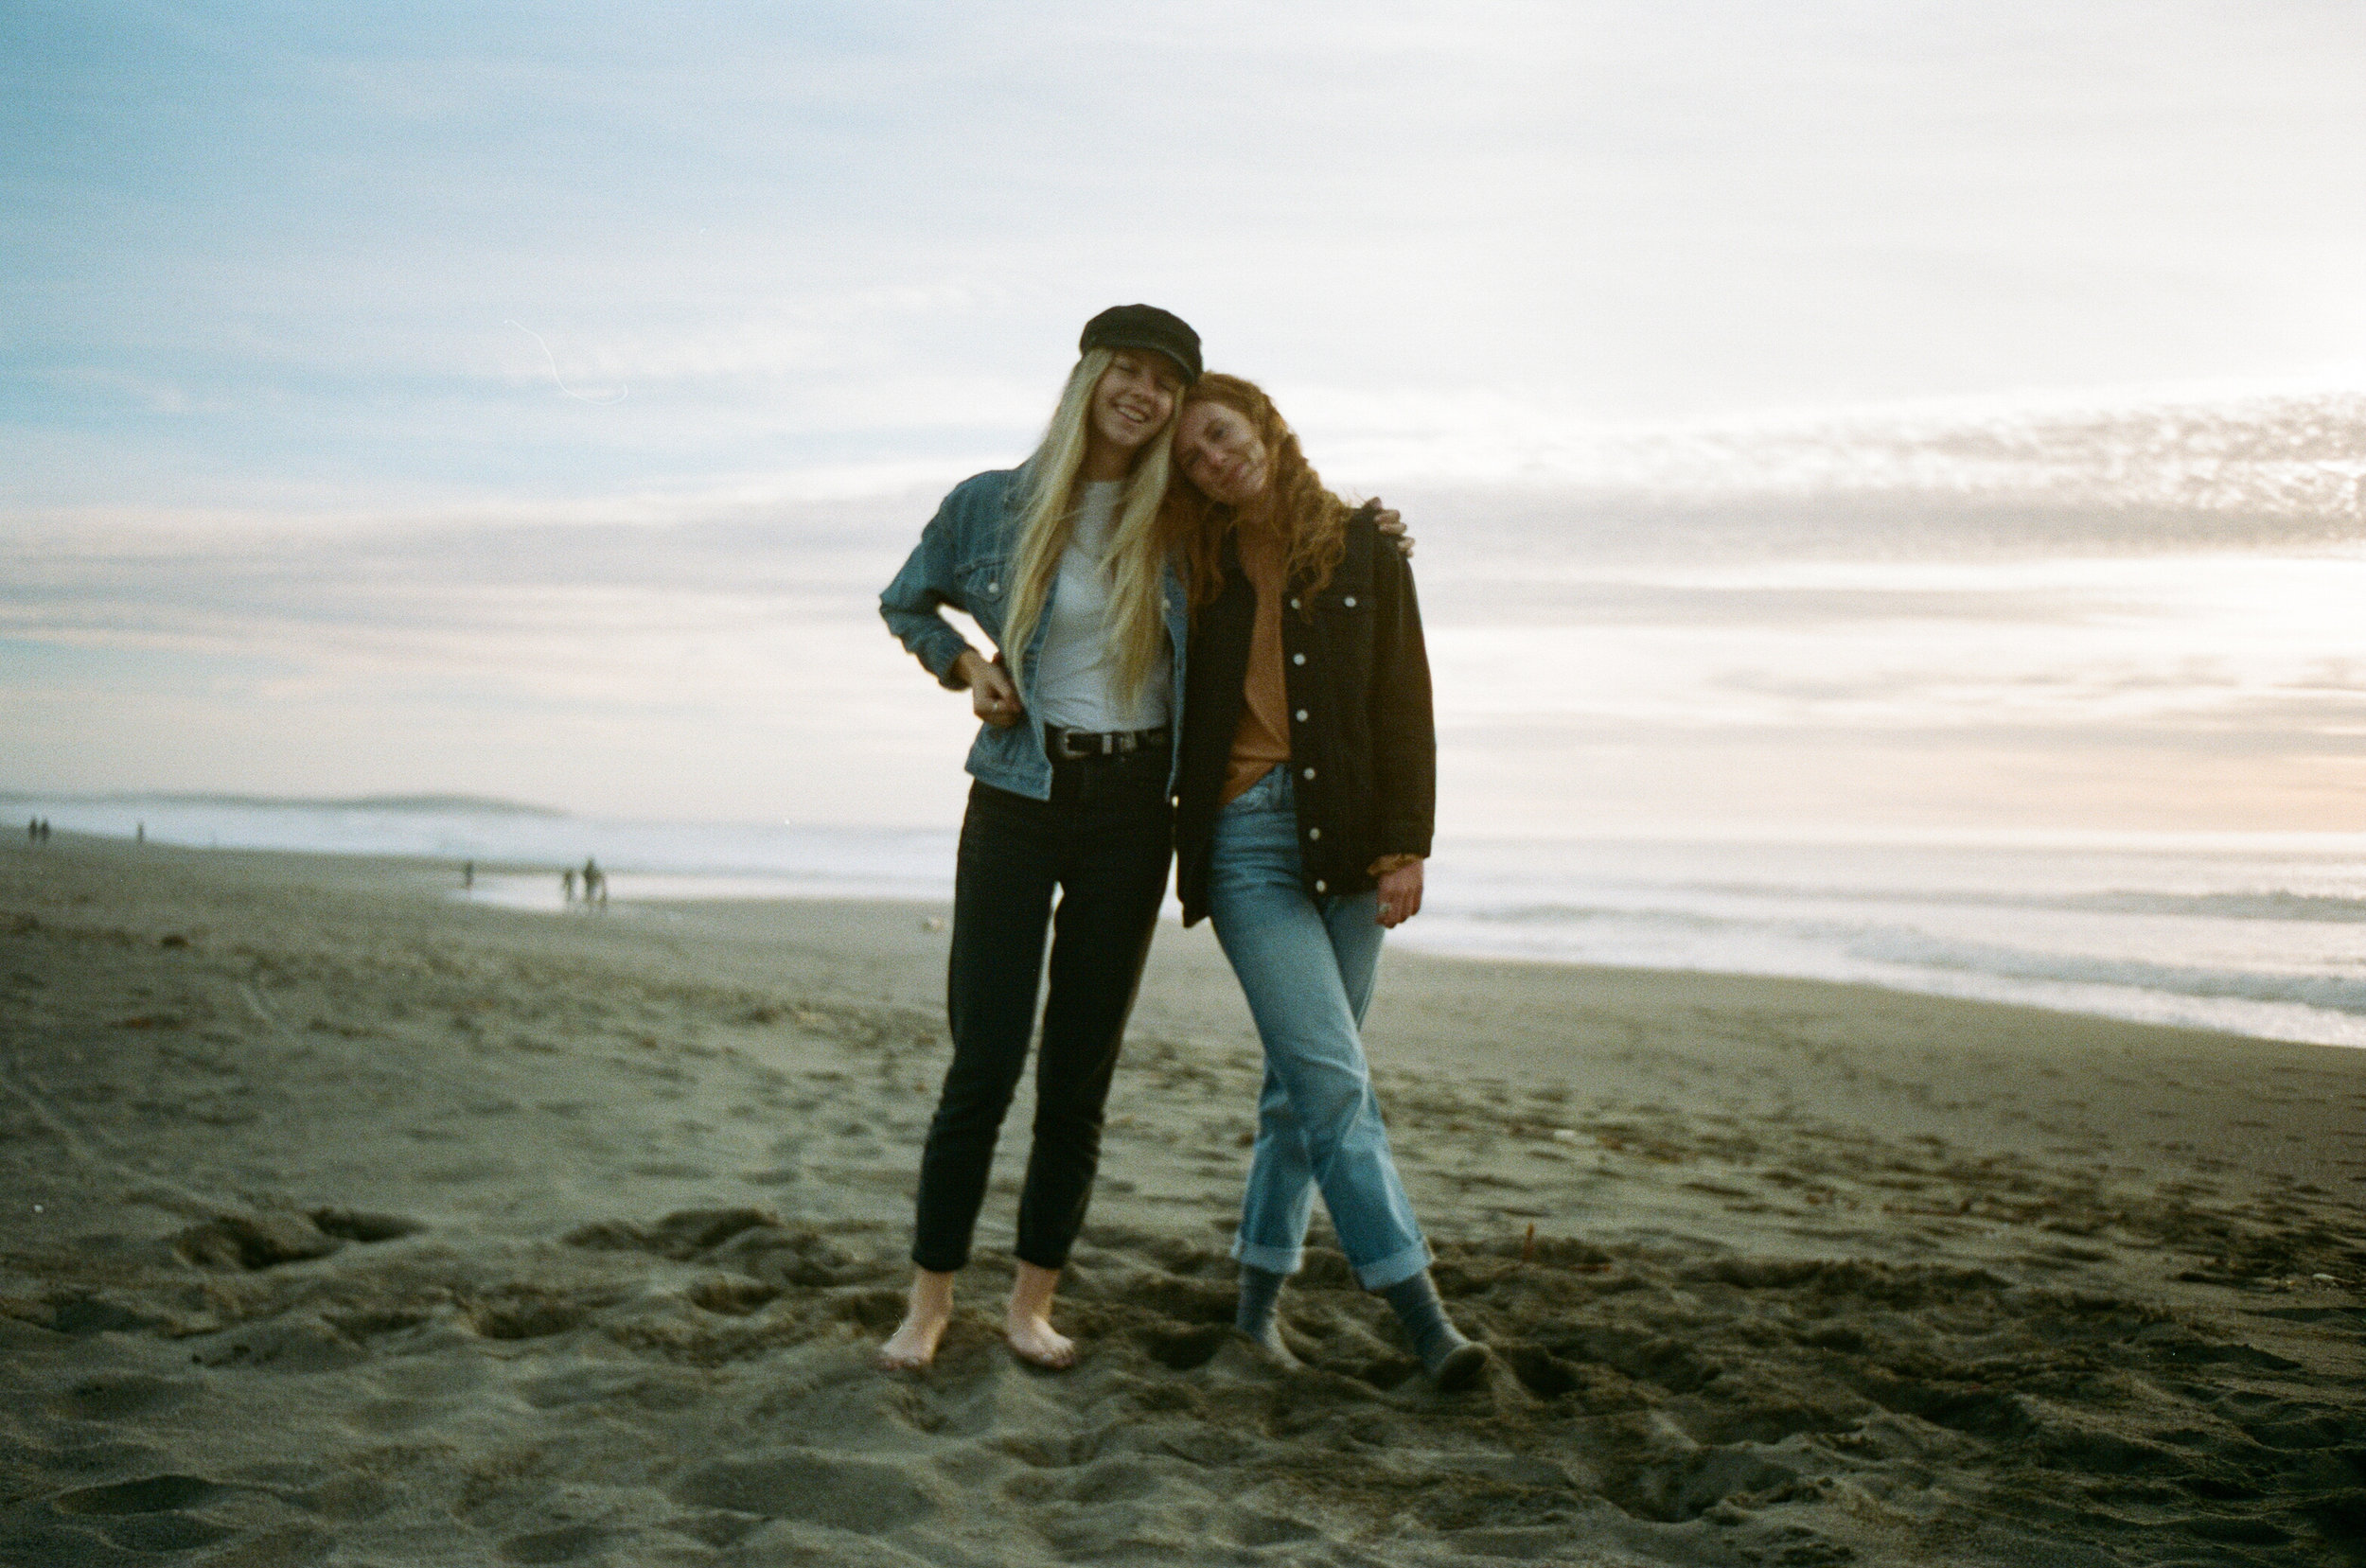 hannah&cole-california-film-jan2019-peytoncurry-000098780006-2.jpg